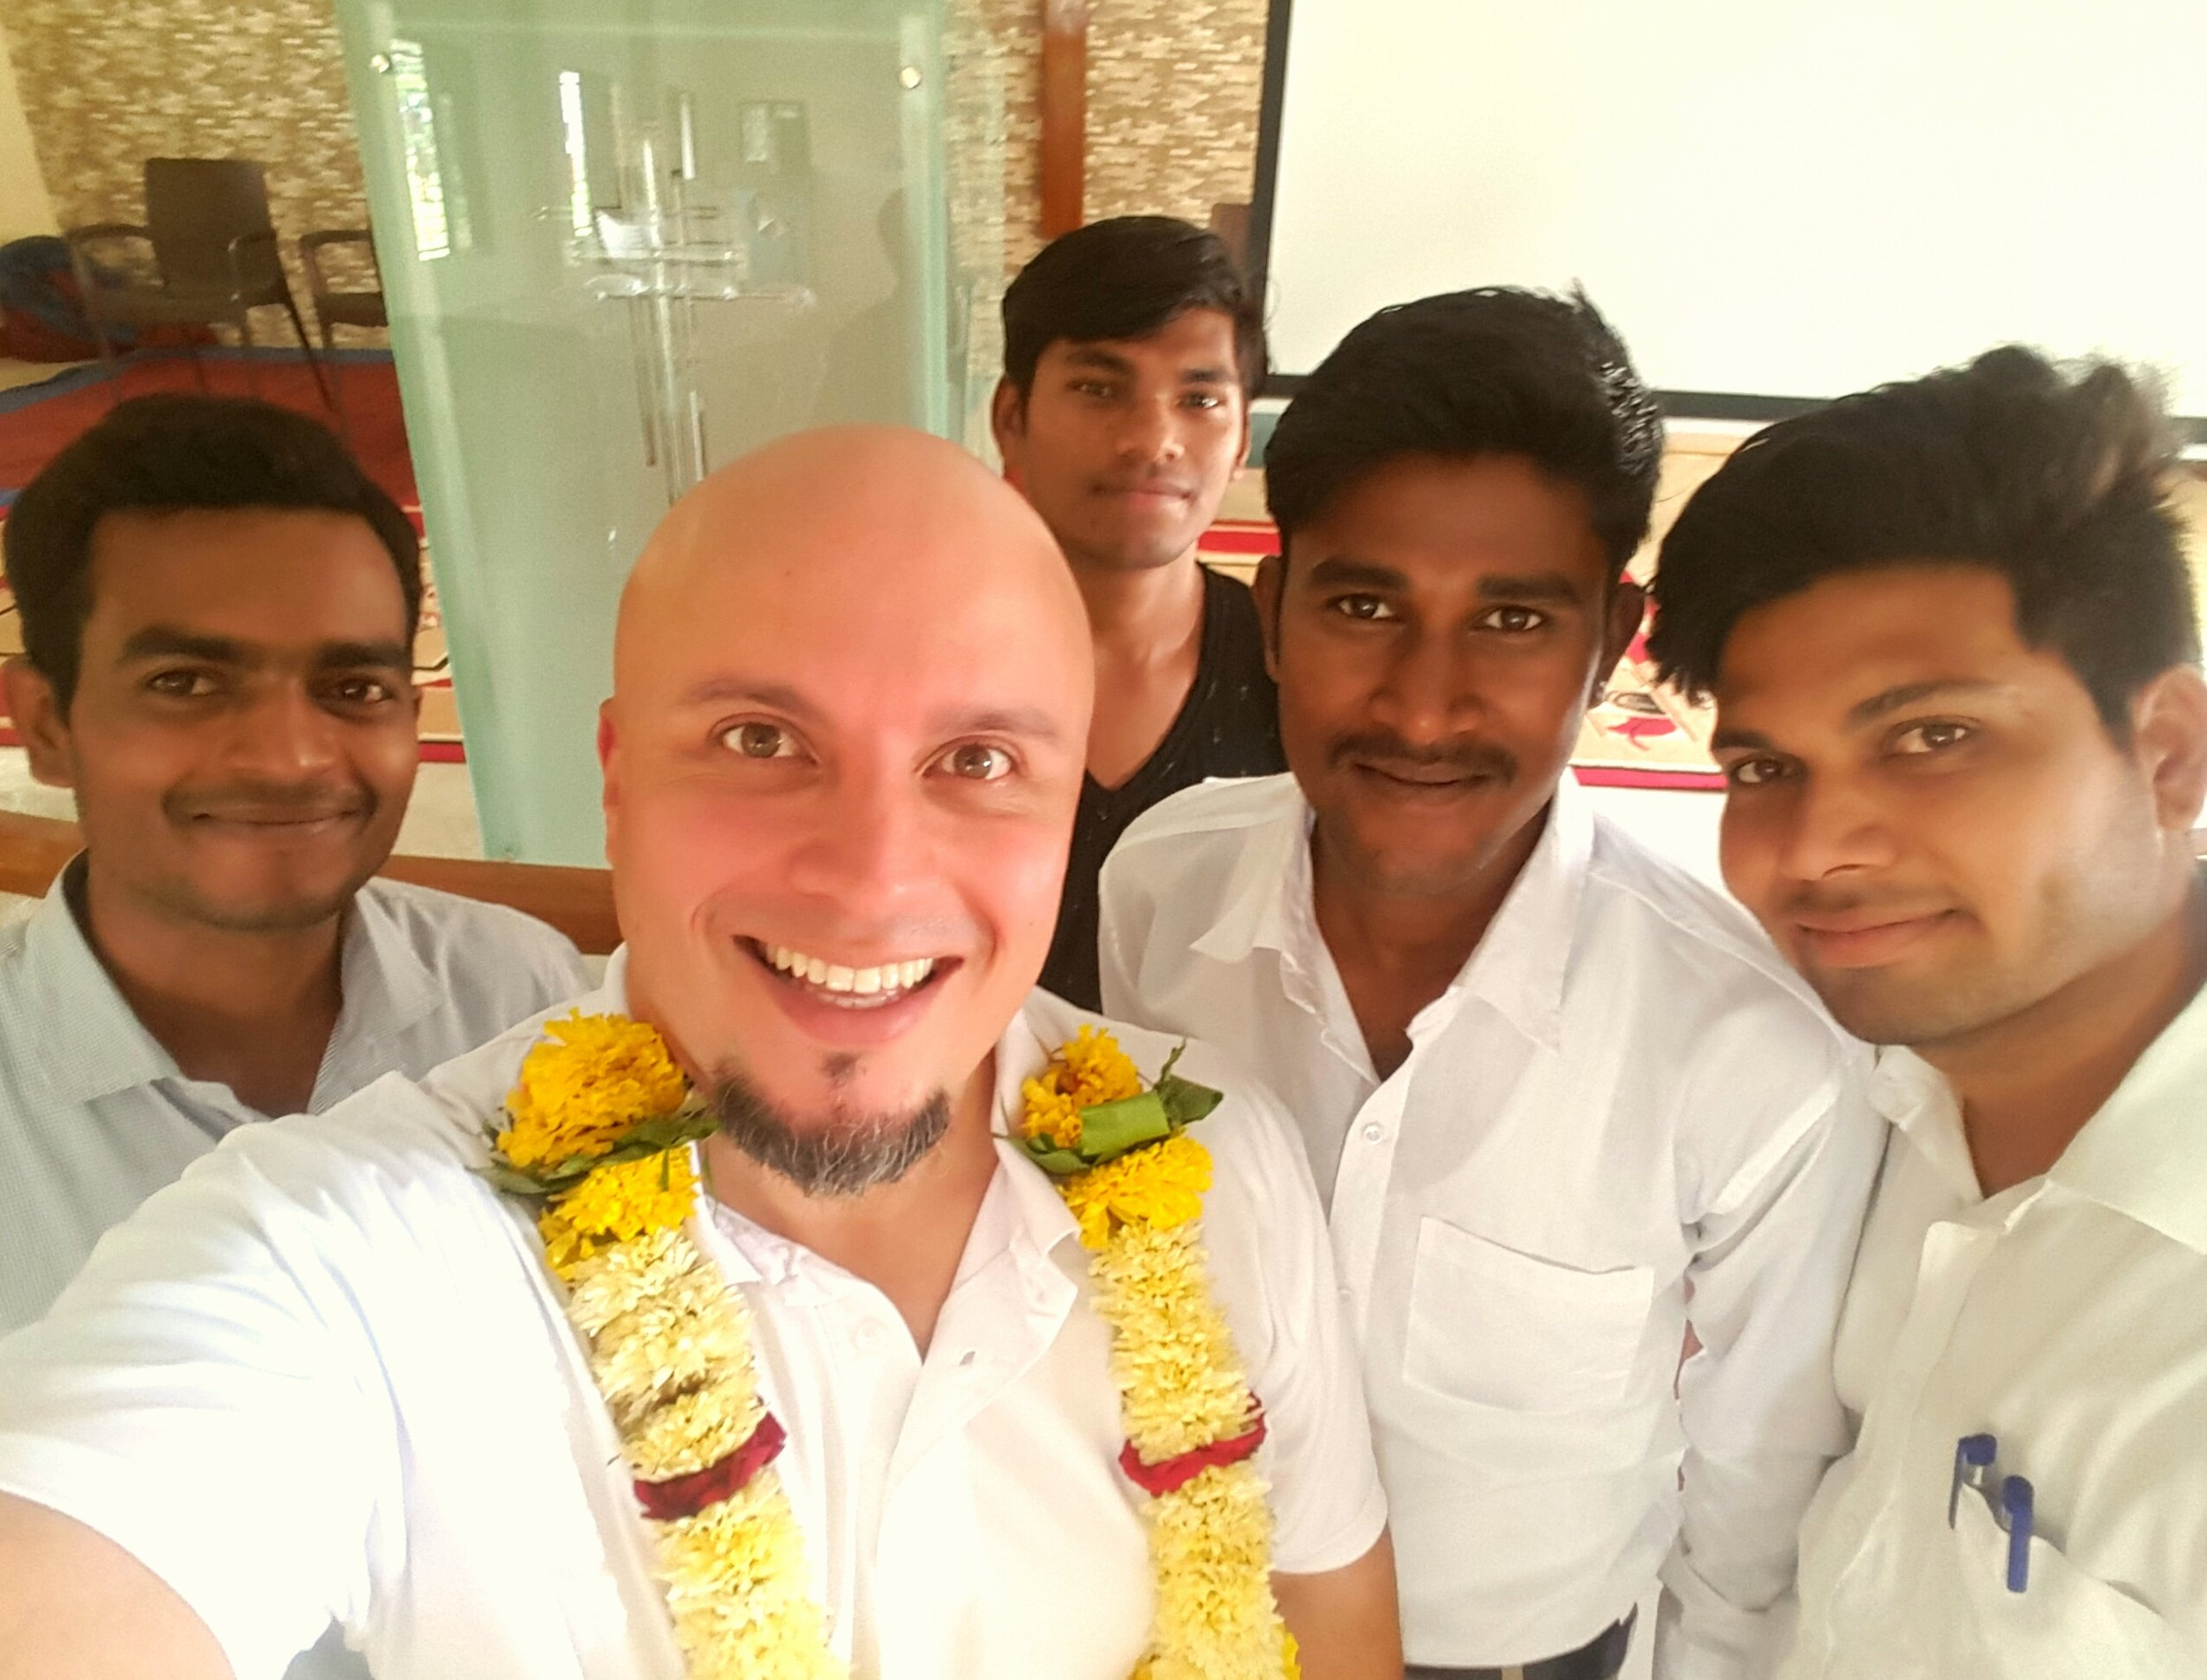 Roy's life was changed through a 10-week Crown small group study. A native of Costa Rica, Roy now travels around the world to teach God's principles to unreached people groups. Most recently he has been ministering in India.